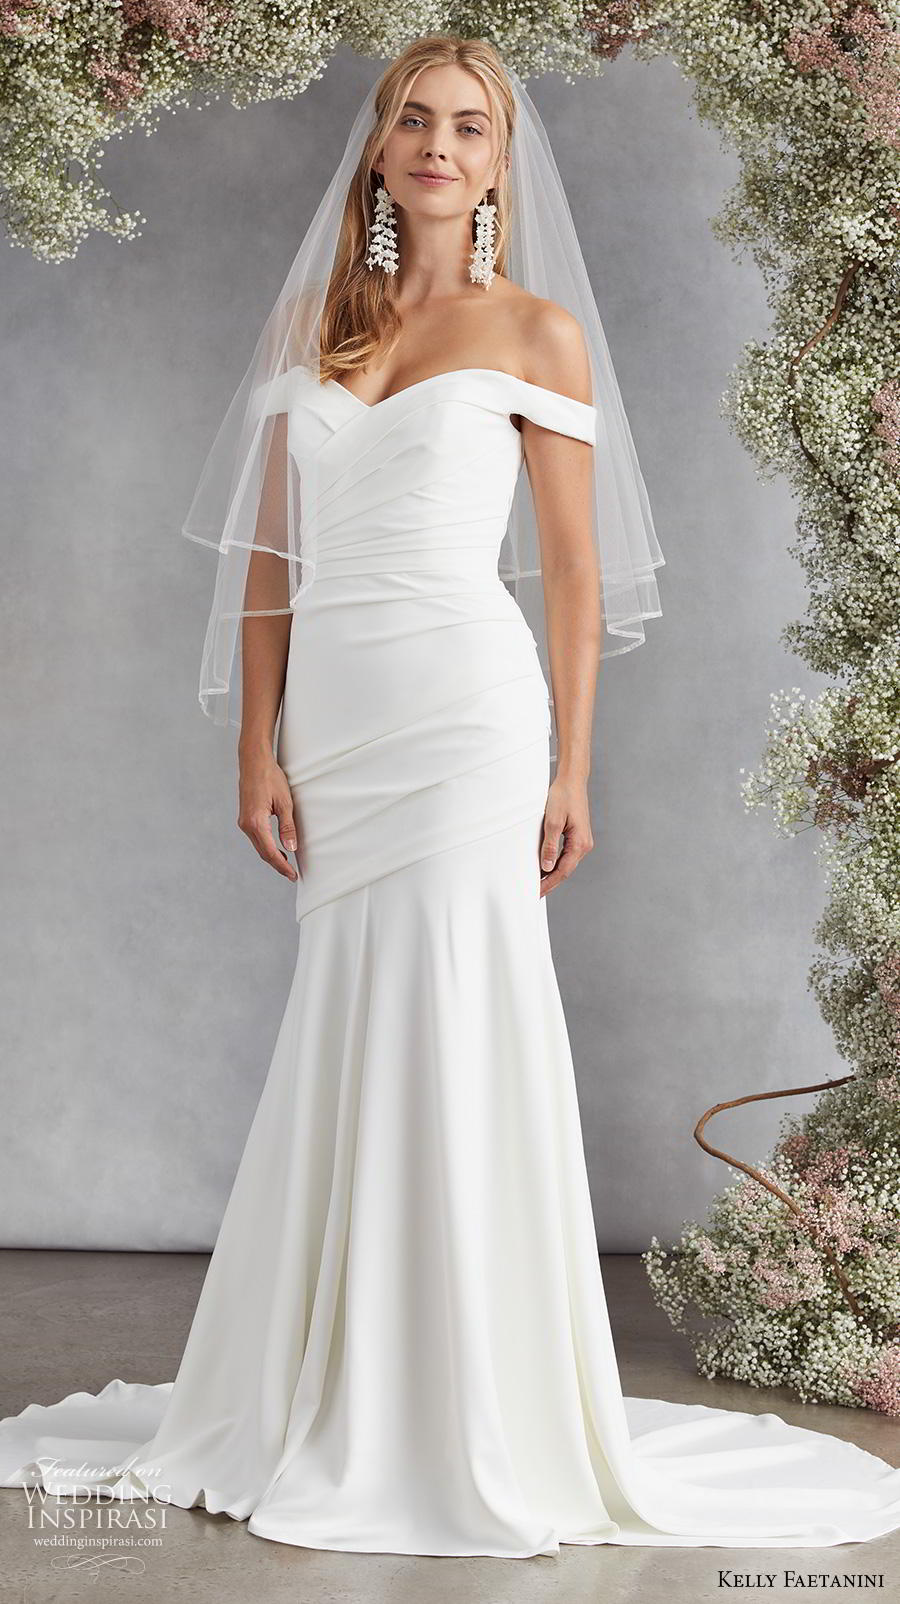 kelly faetanini fall 2020 bridal off the shoulder sweetheart neckline ruched bodice romantic simple minimalist elegant mermaid wedding dress mid back medium train (6)  mv